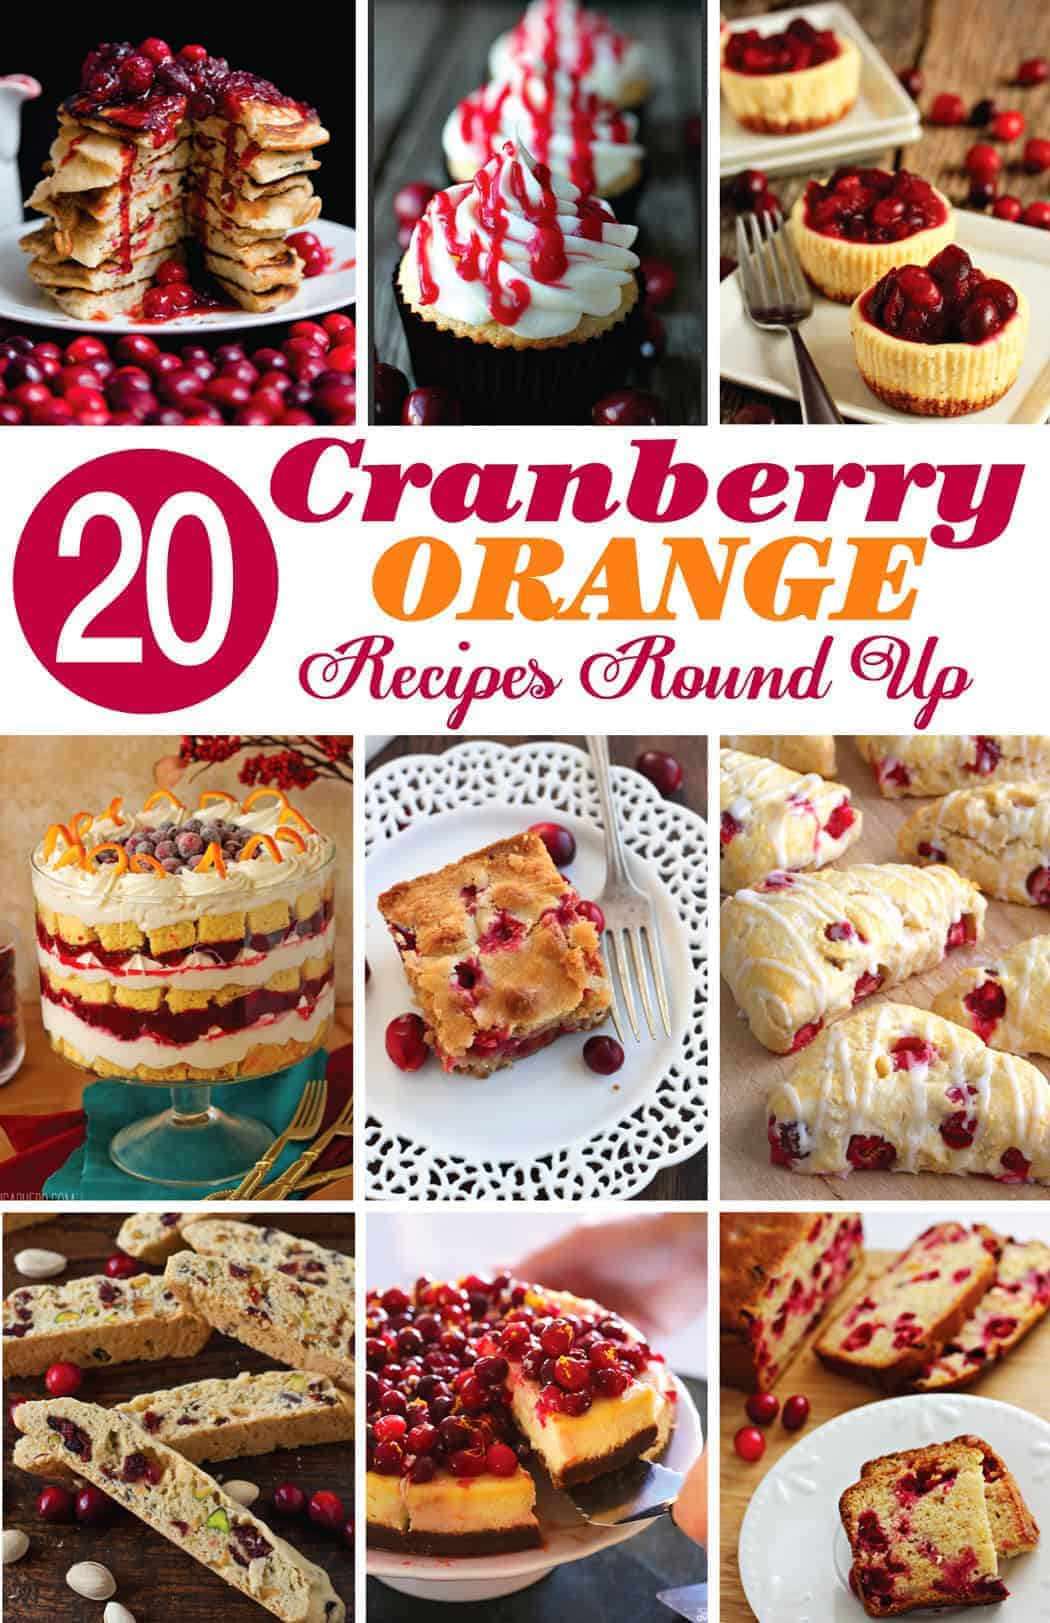 20CranberryRecipes